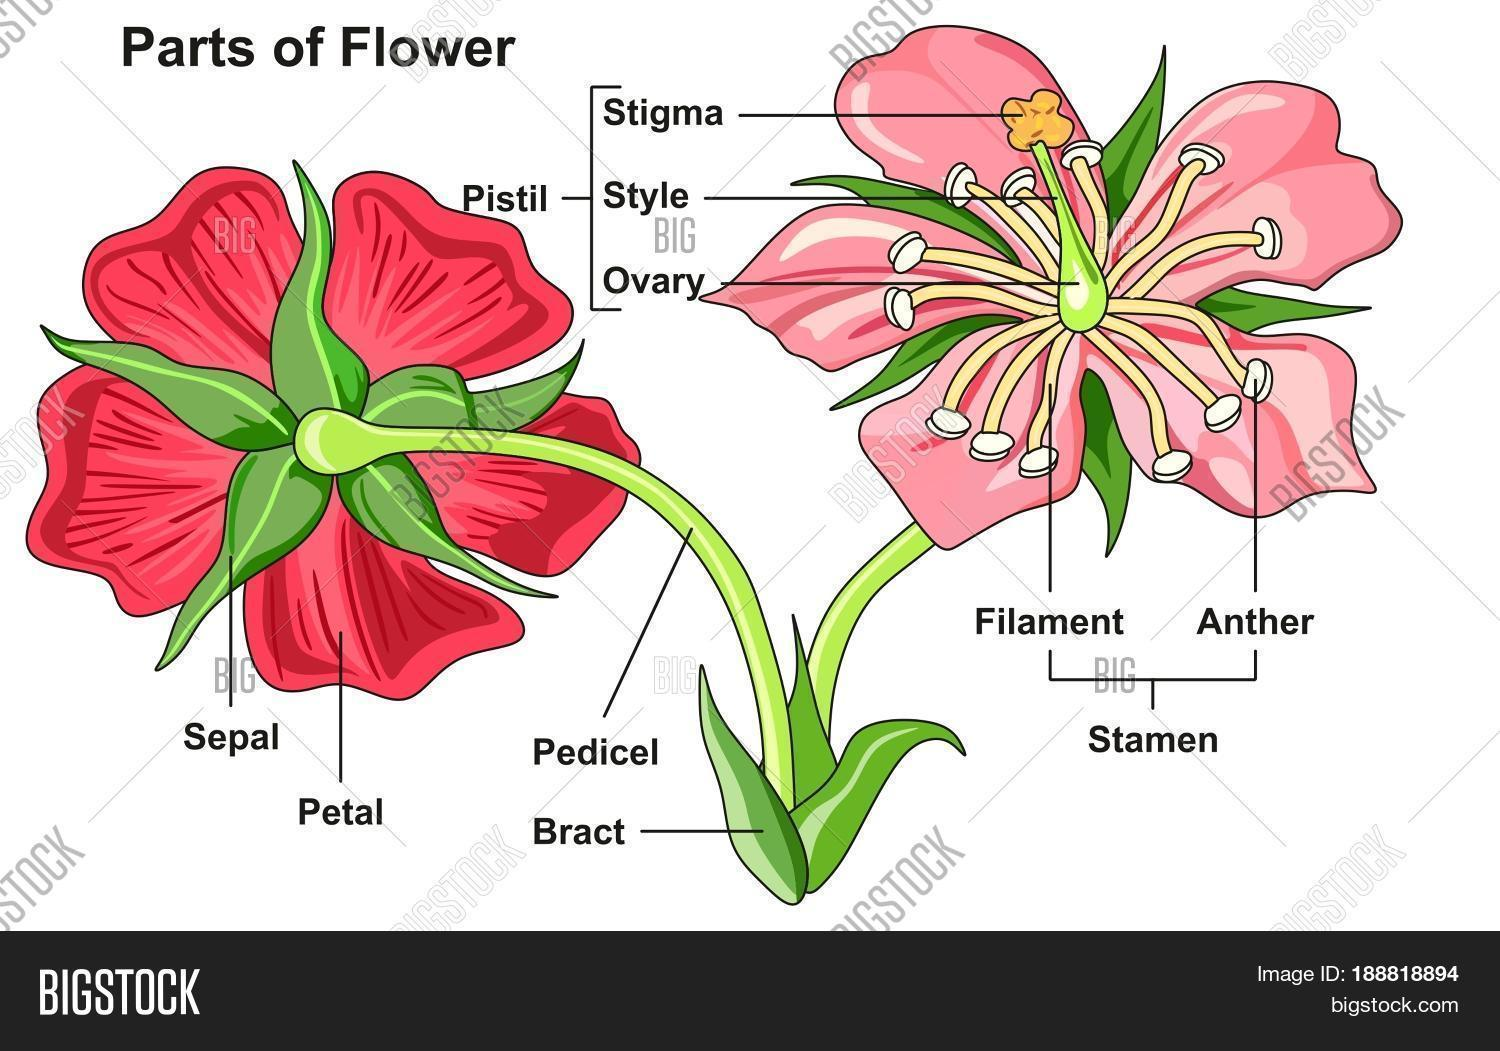 Flower Parts Diagram Image Amp Photo Free Trial